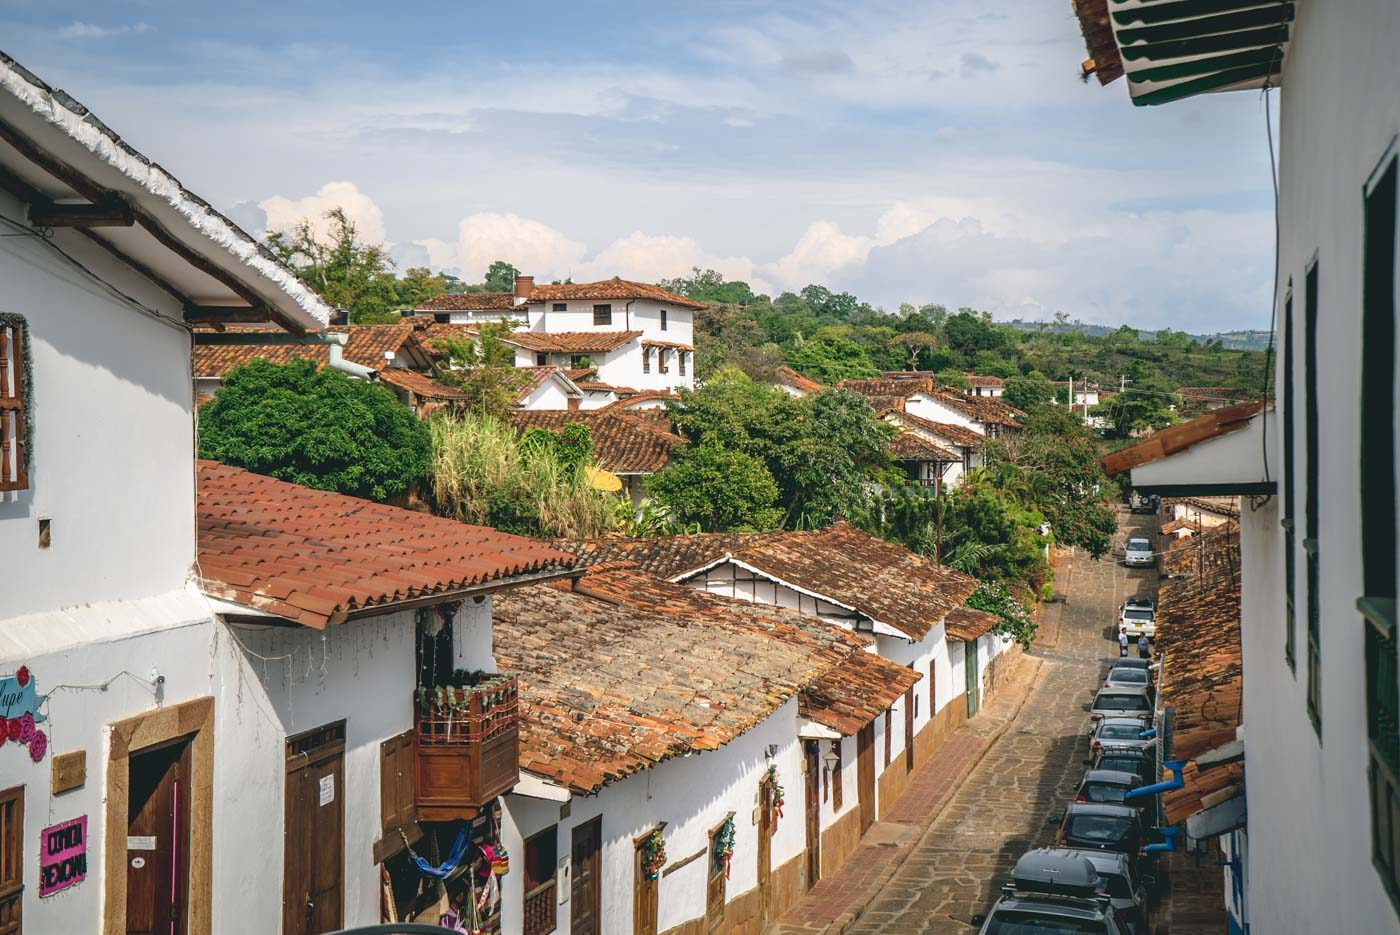 Travel in Colombia: Small town of Barrichara, near San Gil, Colombia